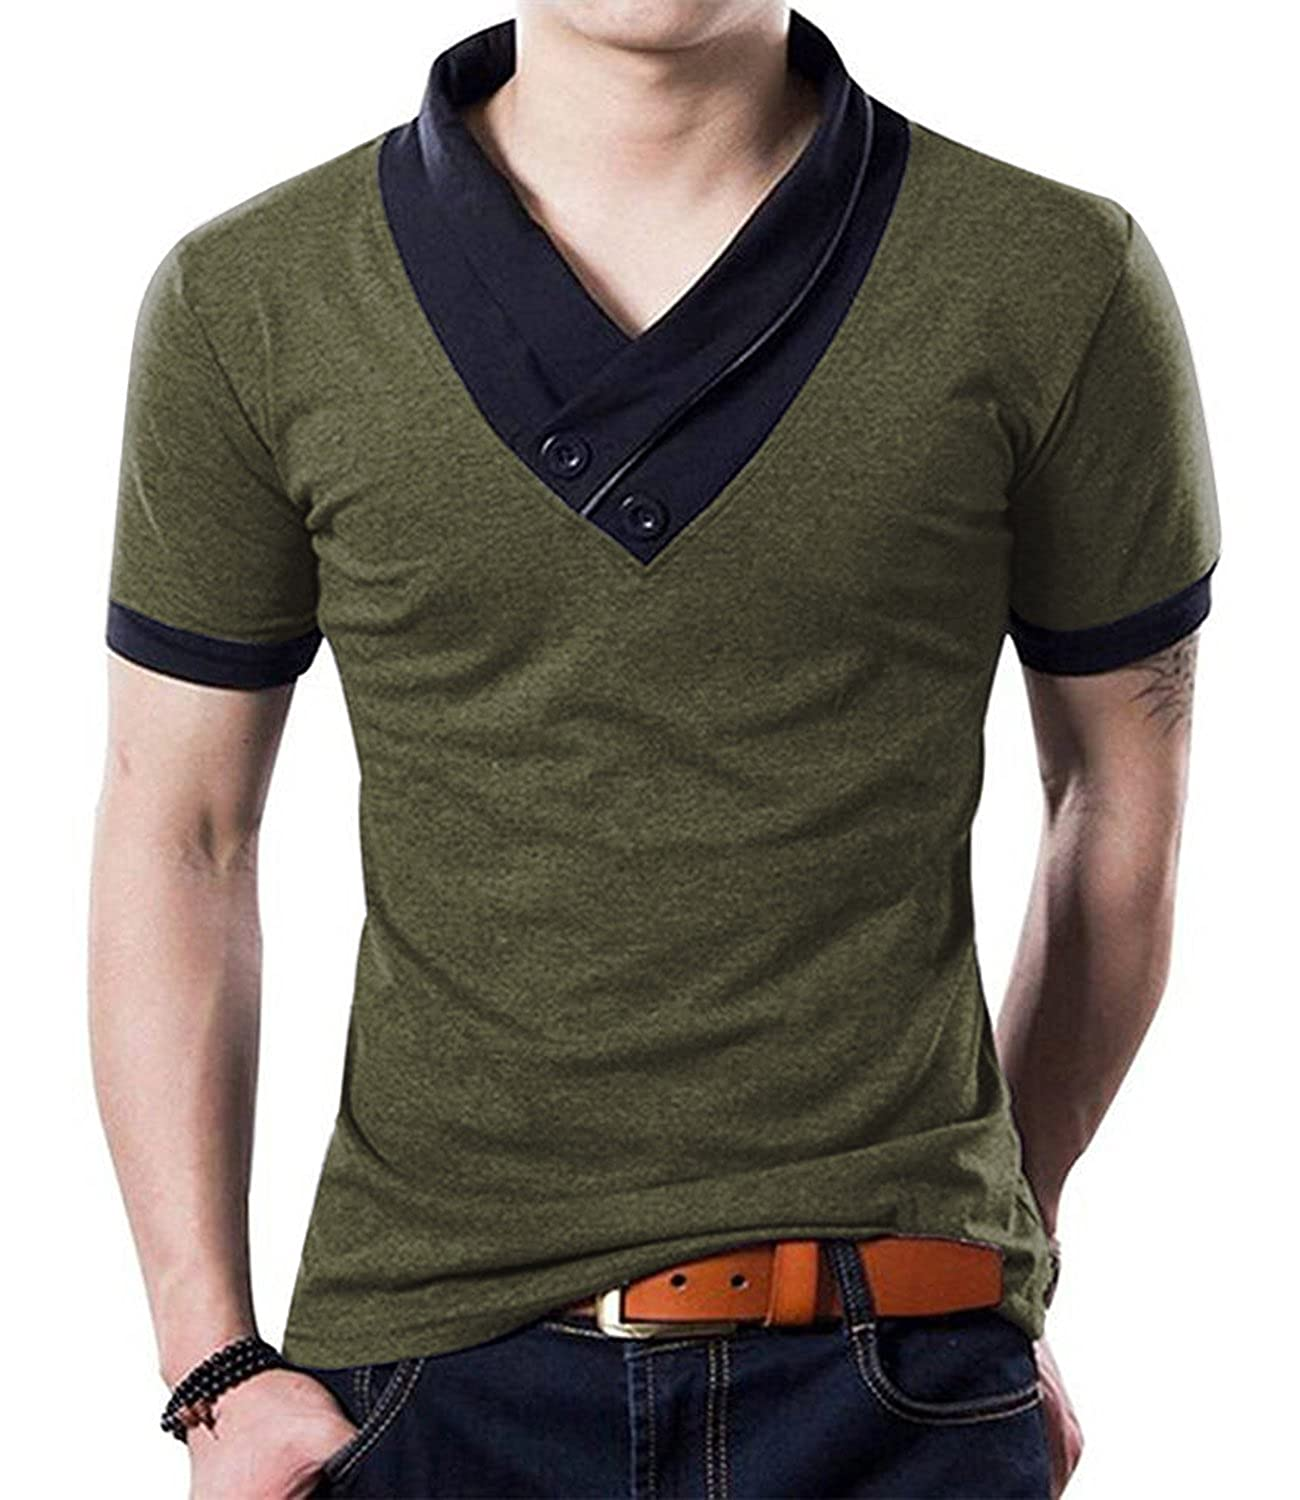 aedae4d6 YTD 100% Cotton Mens Casual V-Neck Button Slim Muscle Tops Tee Short Sleeve  T- Shirts | Amazon.com